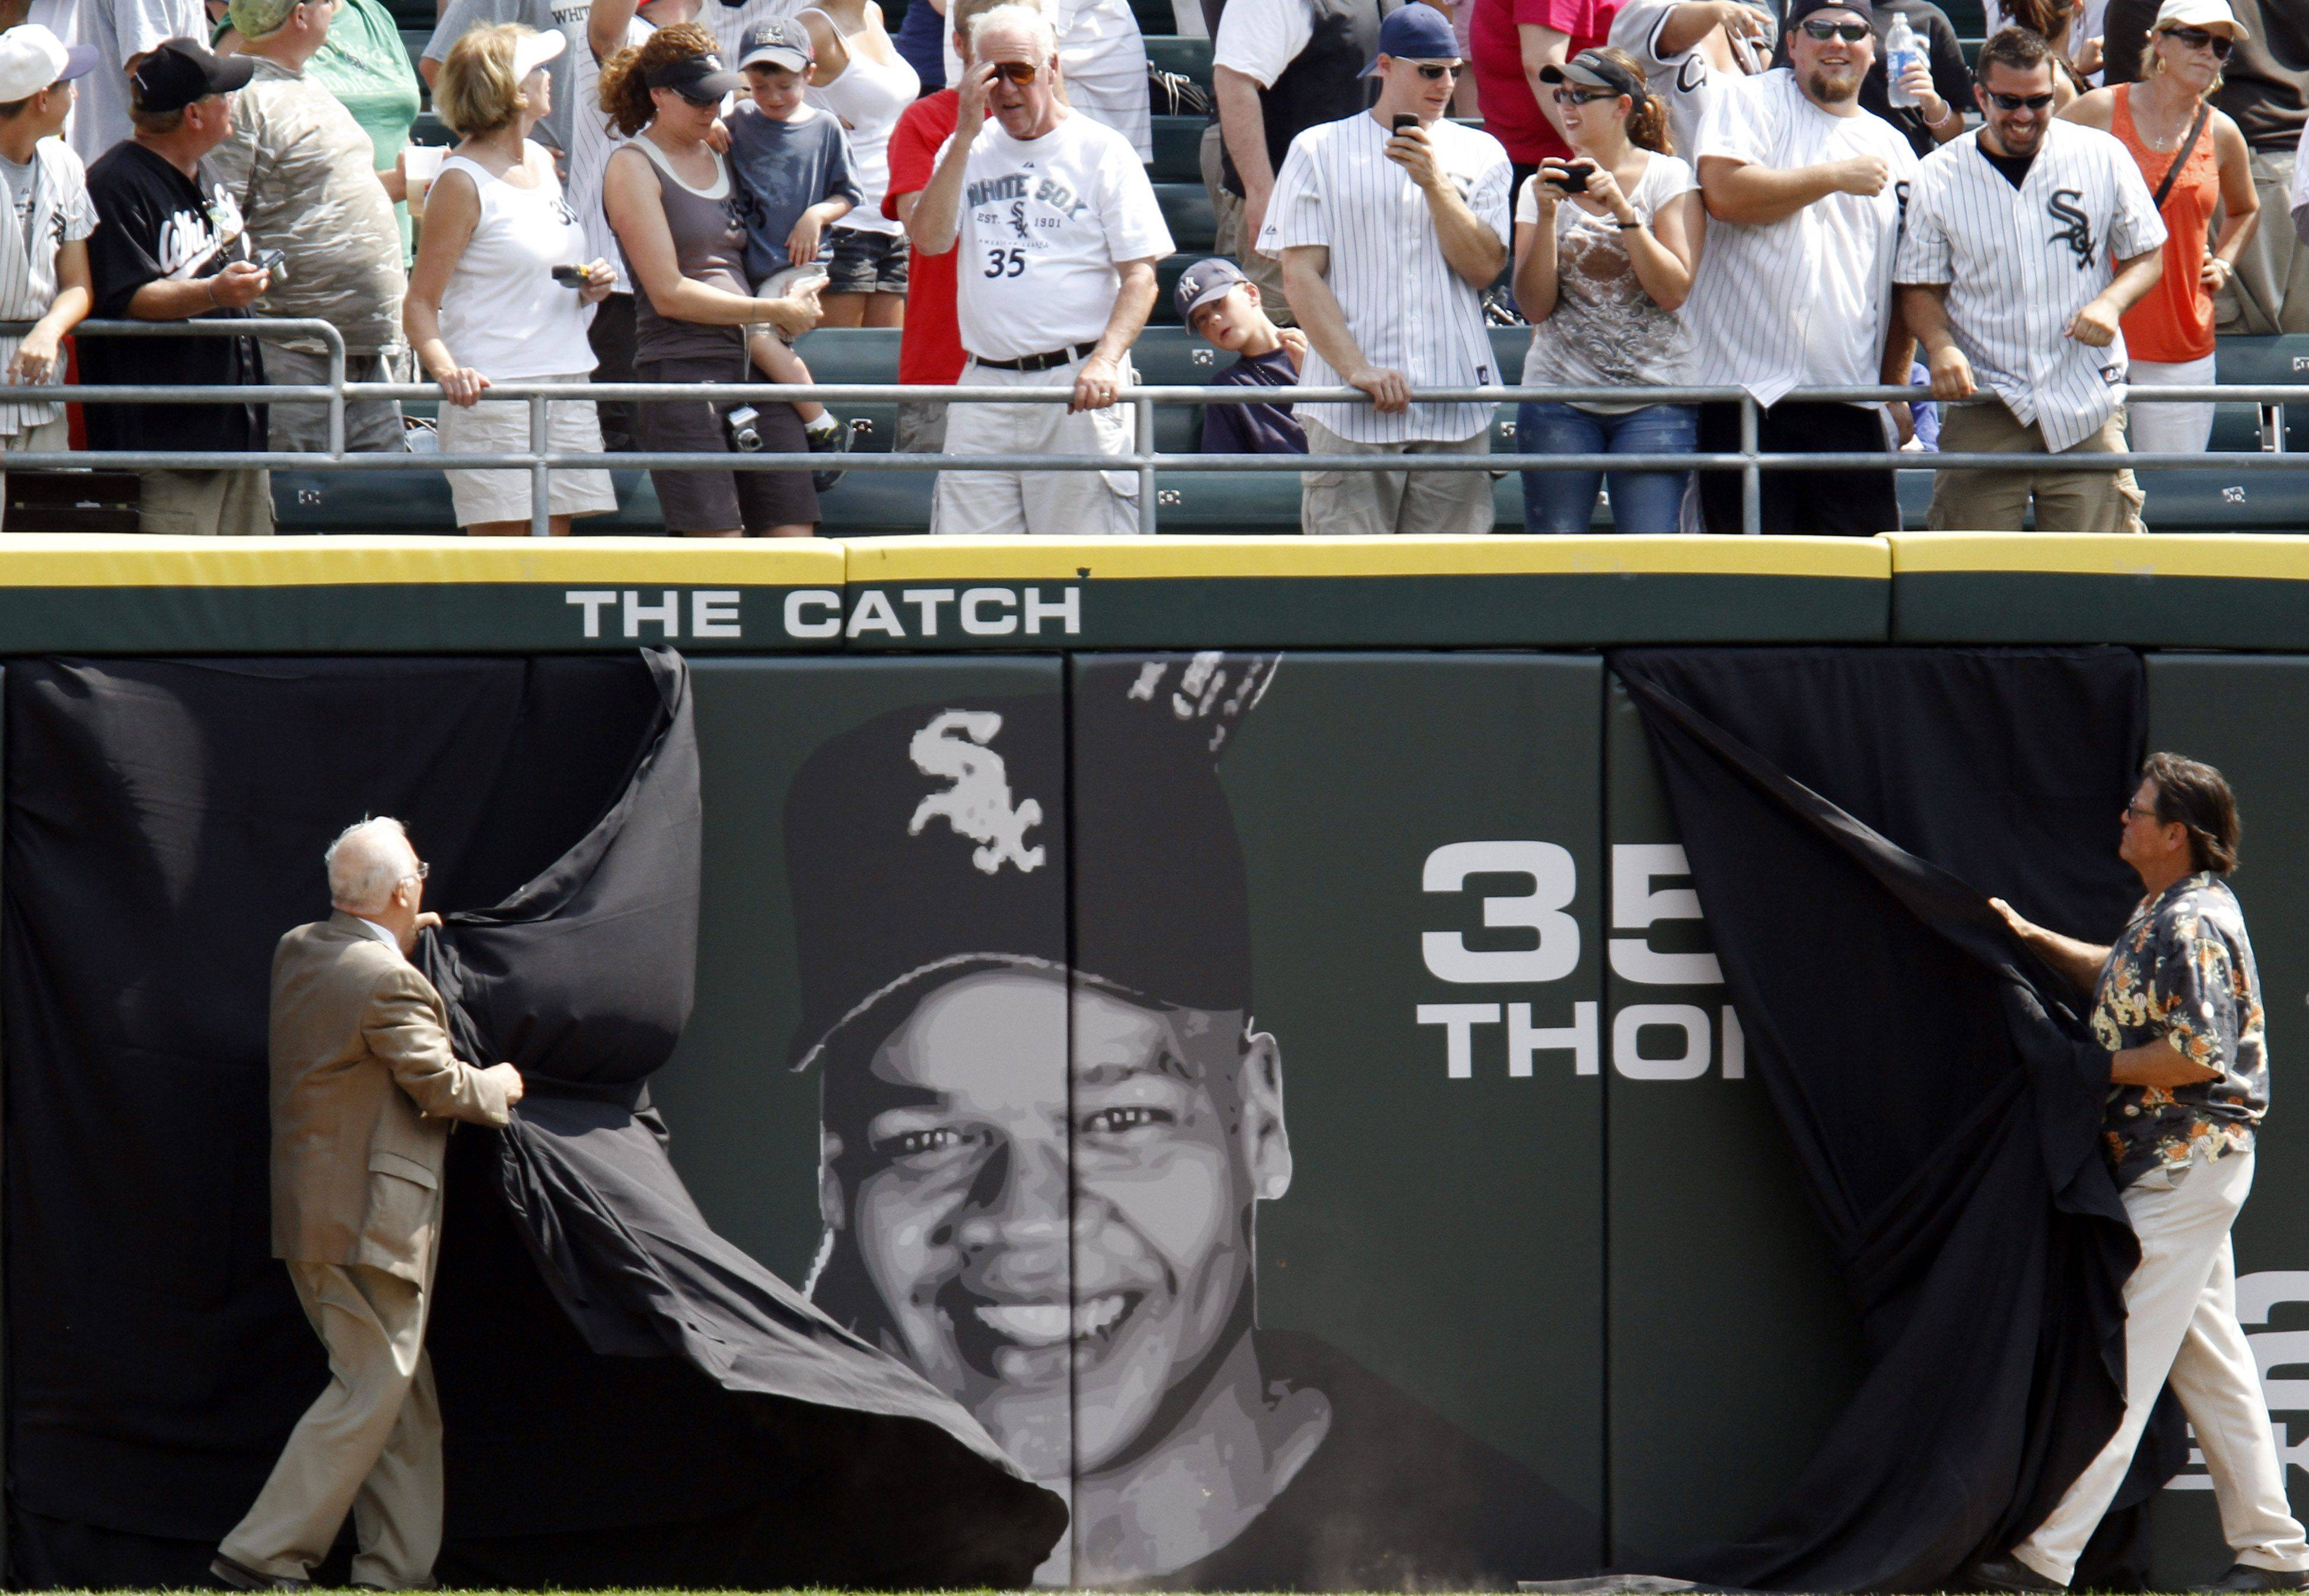 Former Chicago White Sox player Frank Thomas' face is unveiled on the outfield wall before a baseball game between the New York Yankees and the White Sox in Chicago, Sunday, Aug. 29, 2010. Thomas is the 10th White Sox player whose number has been retired and whose face appears on the outfield wall.